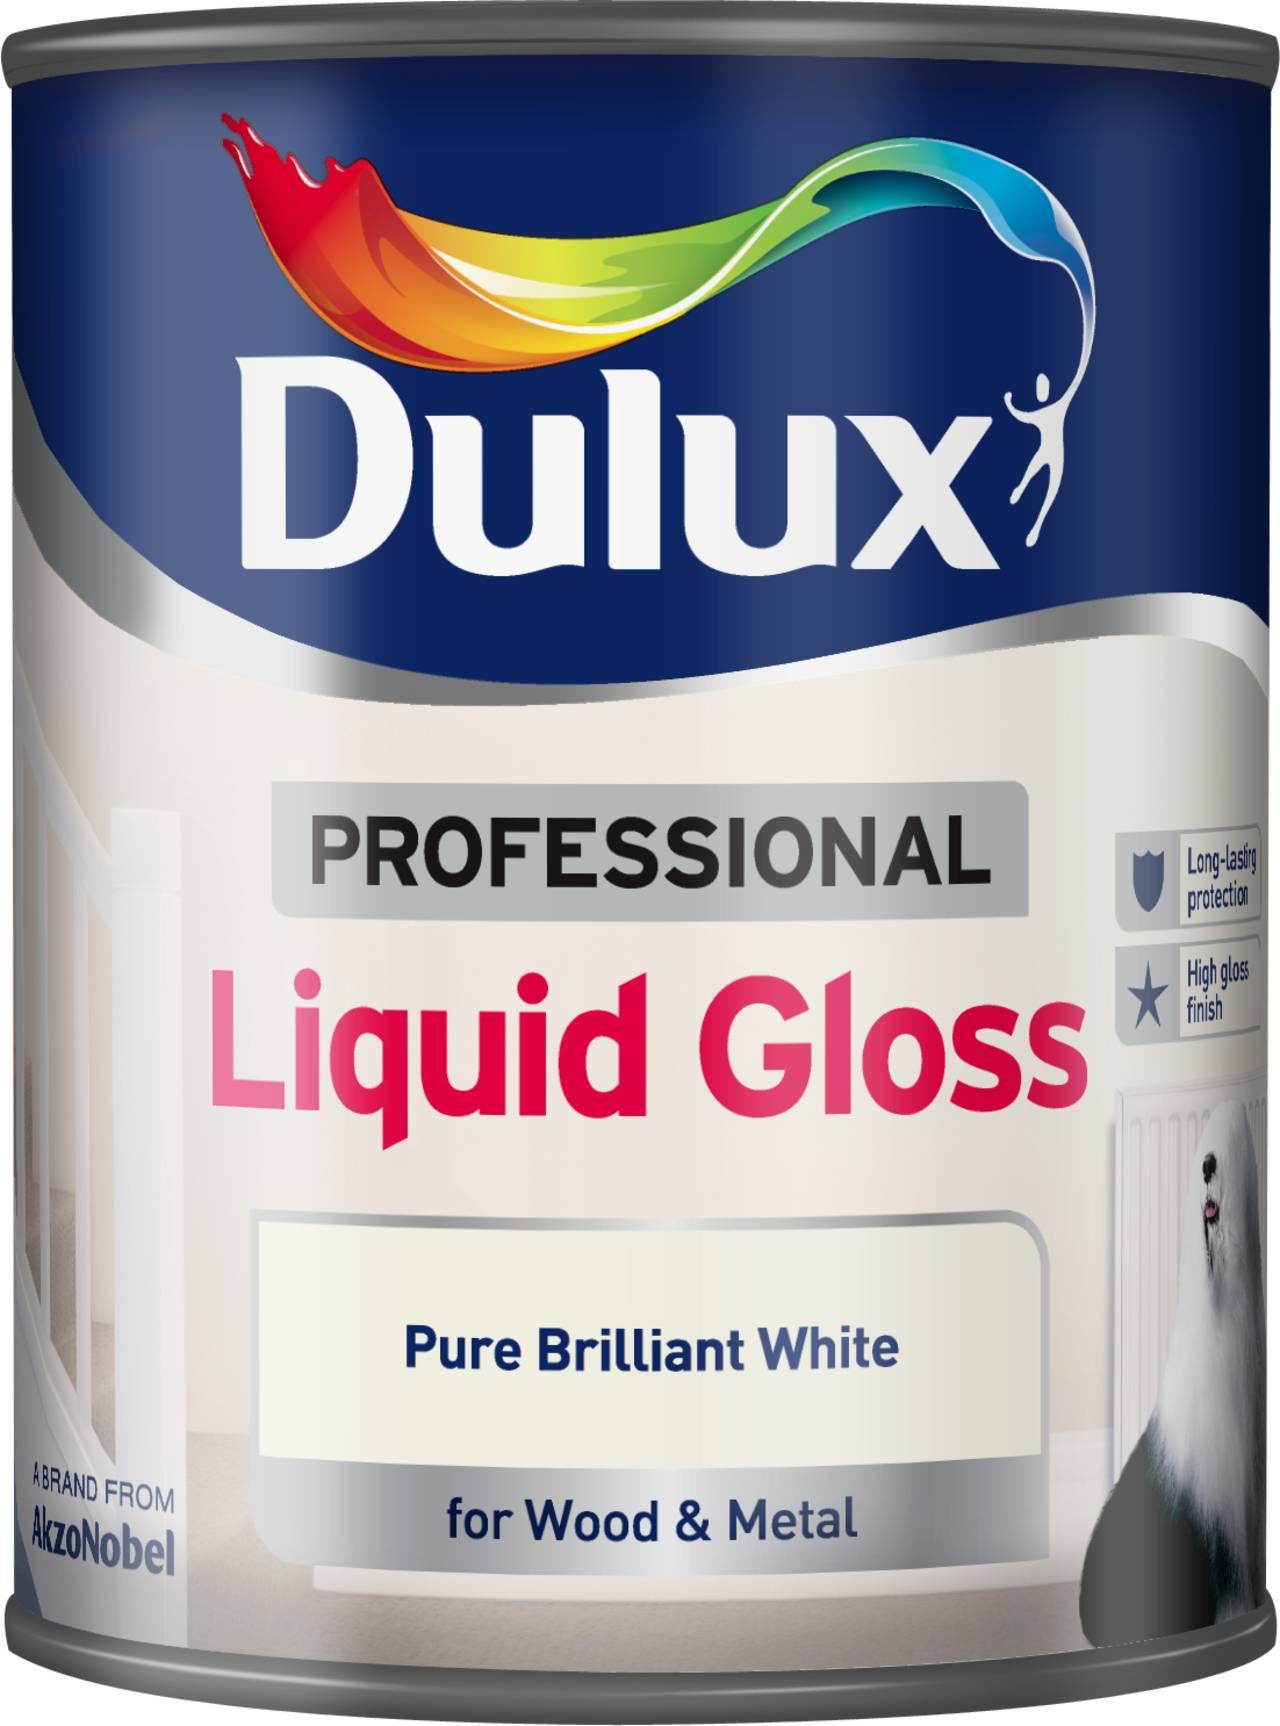 Compare prices for Dulux Professional Liquid Gloss Paint - Brilliant White - 750ml